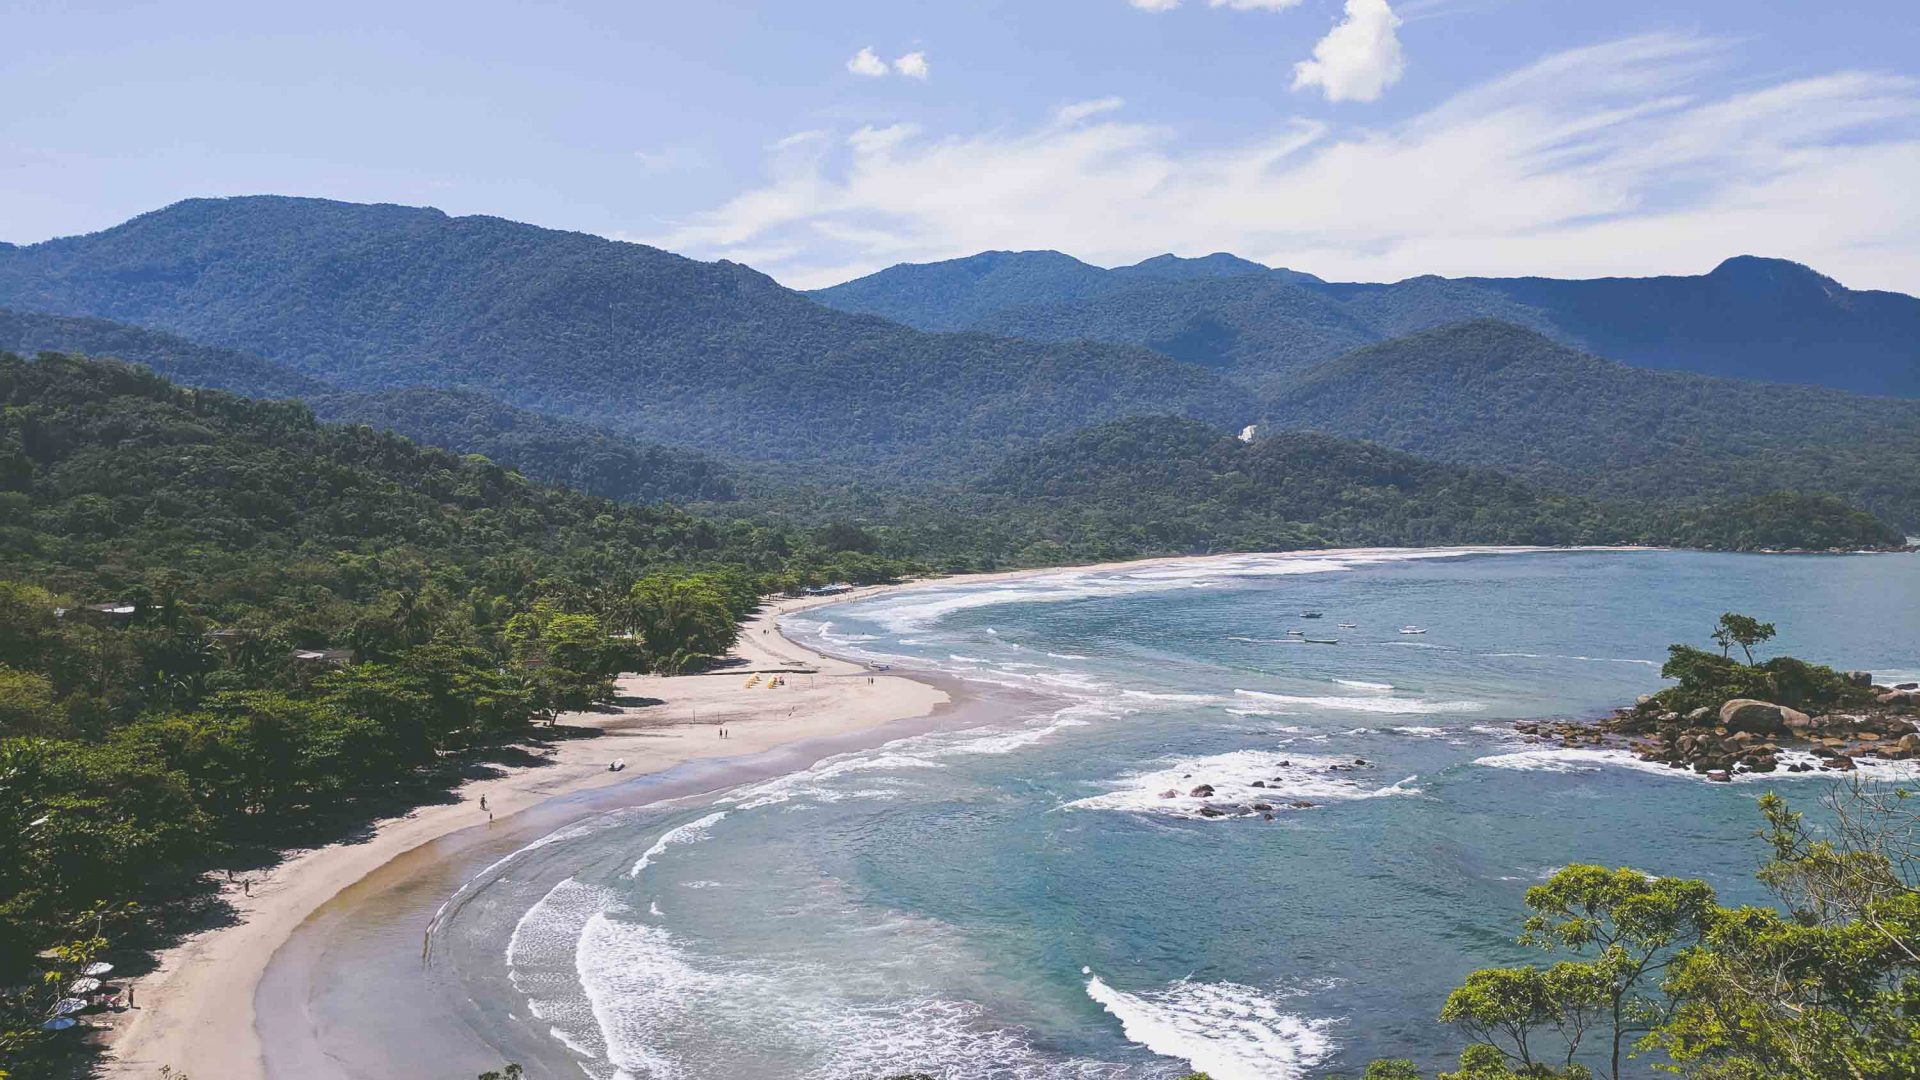 Sweeping views over Ilhabela reveal pristine coast and the biosphere reserve of the Atlantic rainforest.